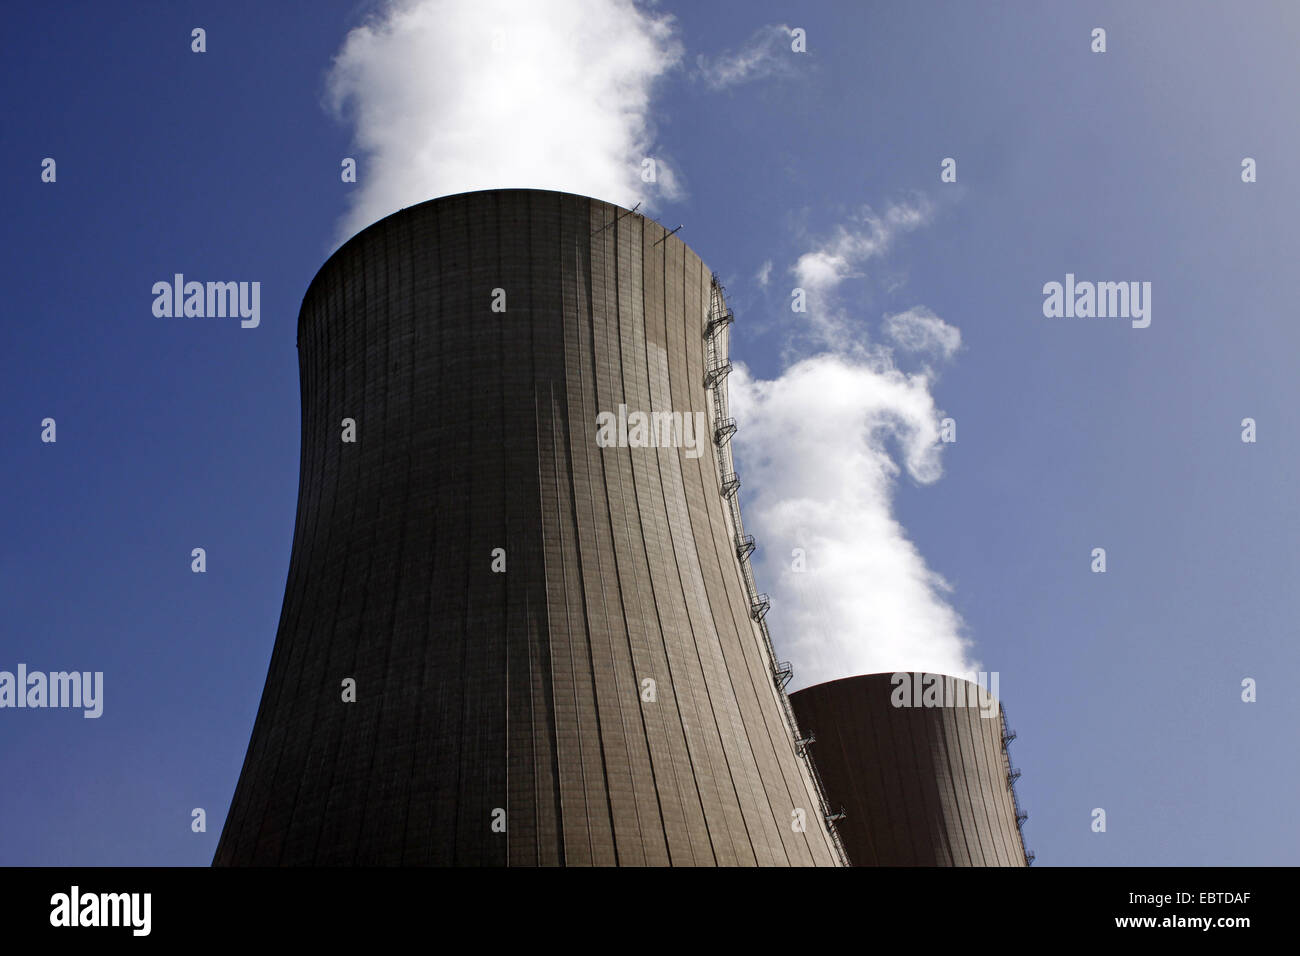 two looming cooling towers of the nuclear power plant Grohnde, Germany, Lower Saxony, Grohnde - Stock Image